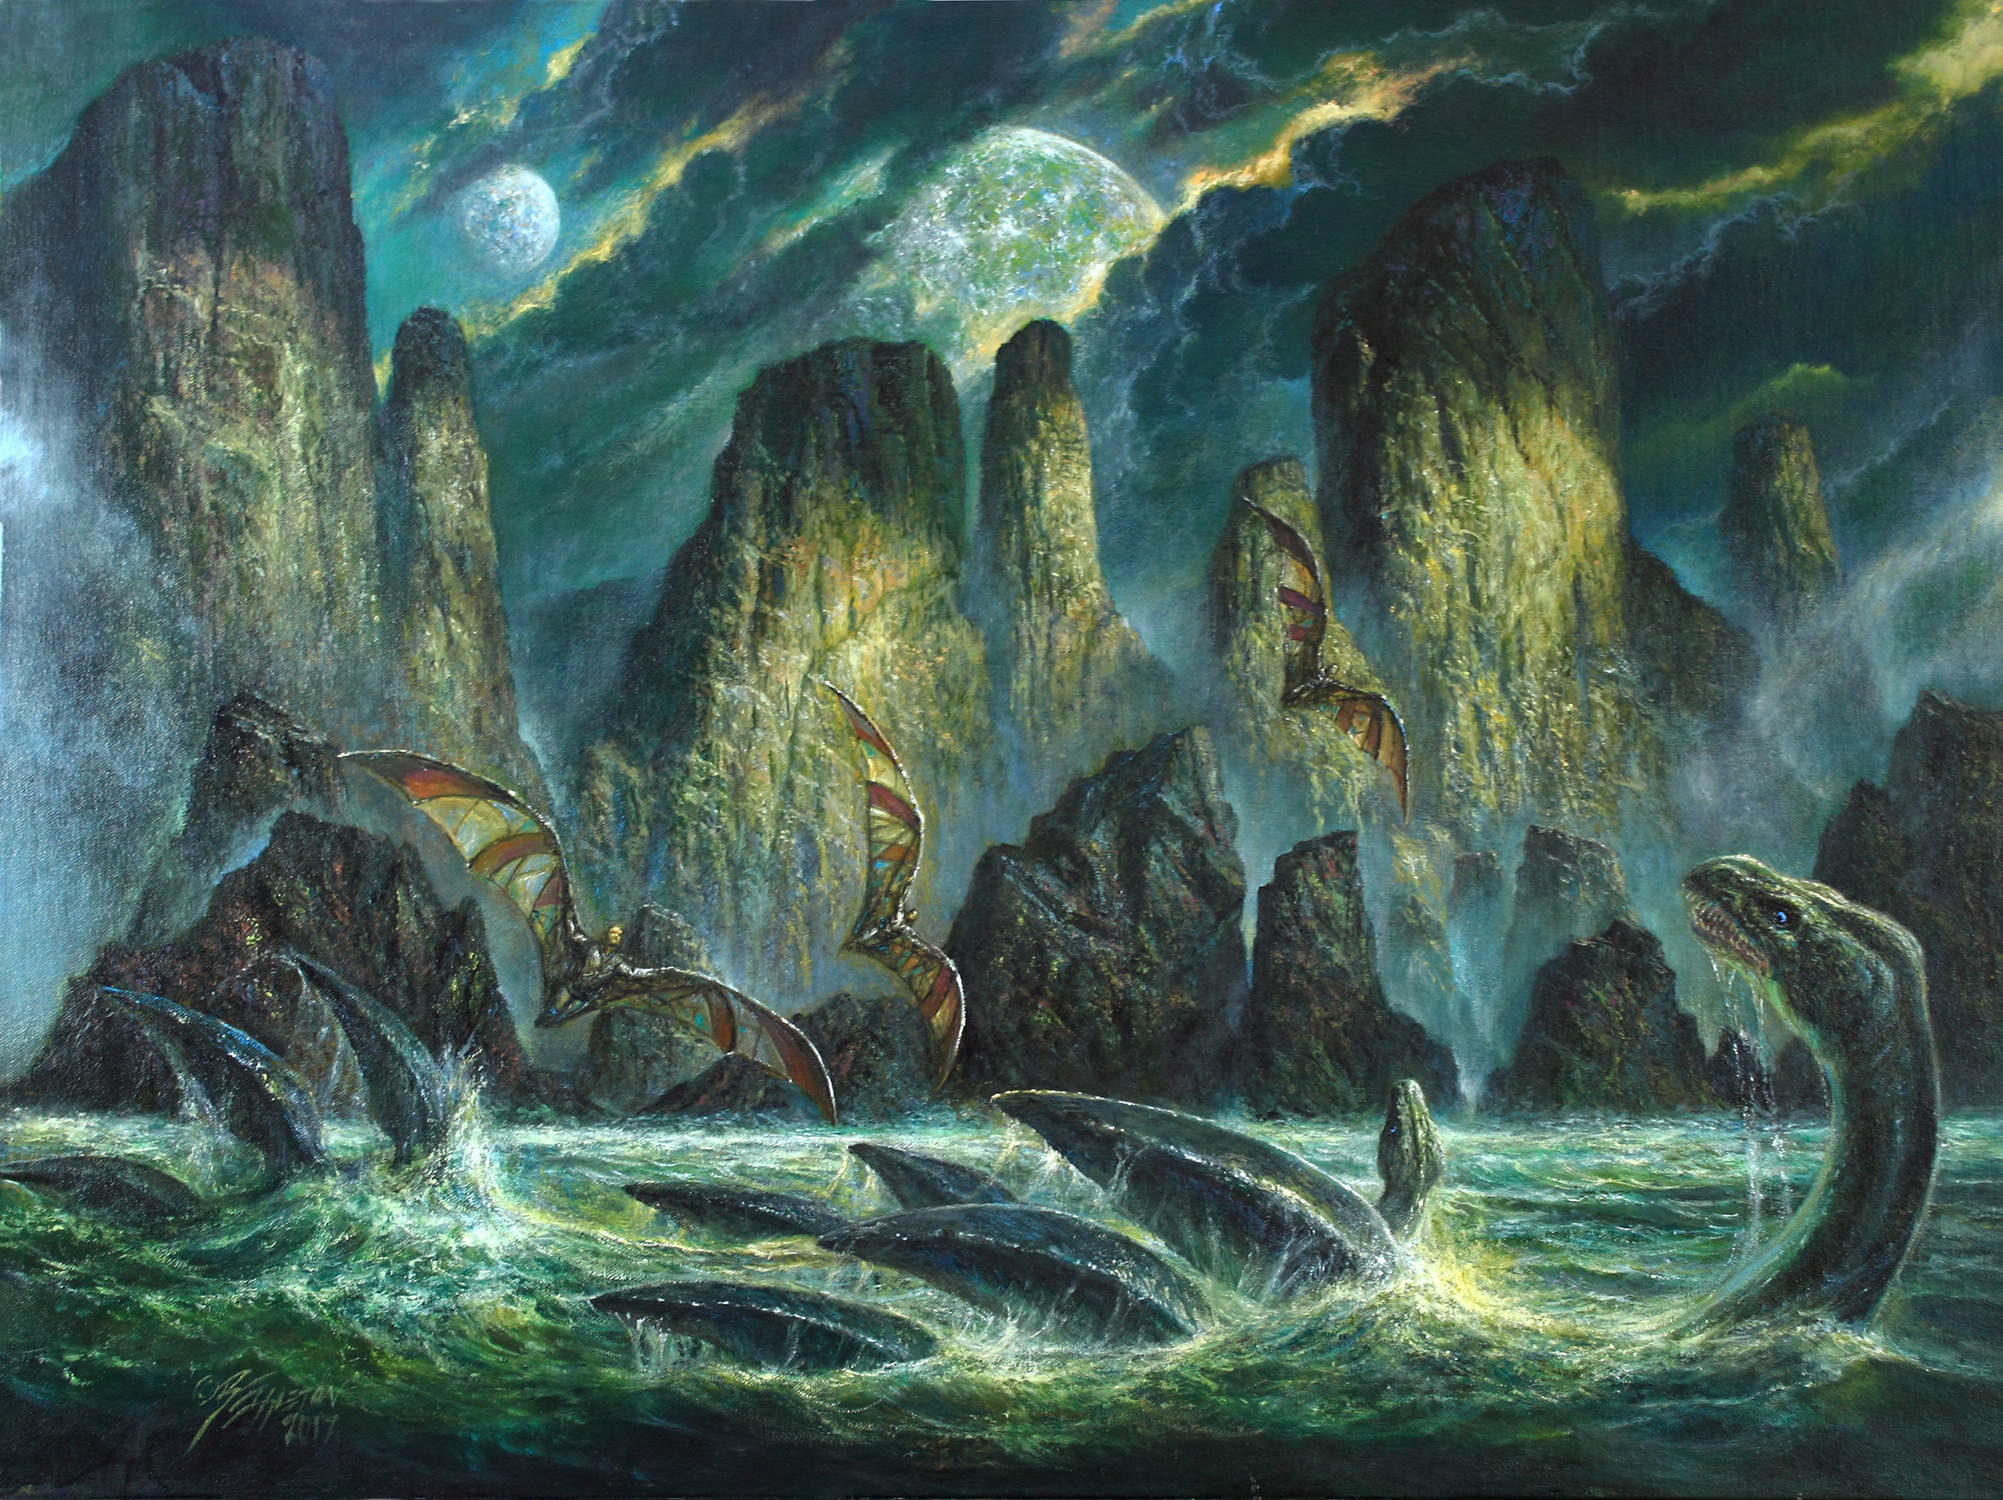 WINDHAVEN Artwork by Bob Eggleton